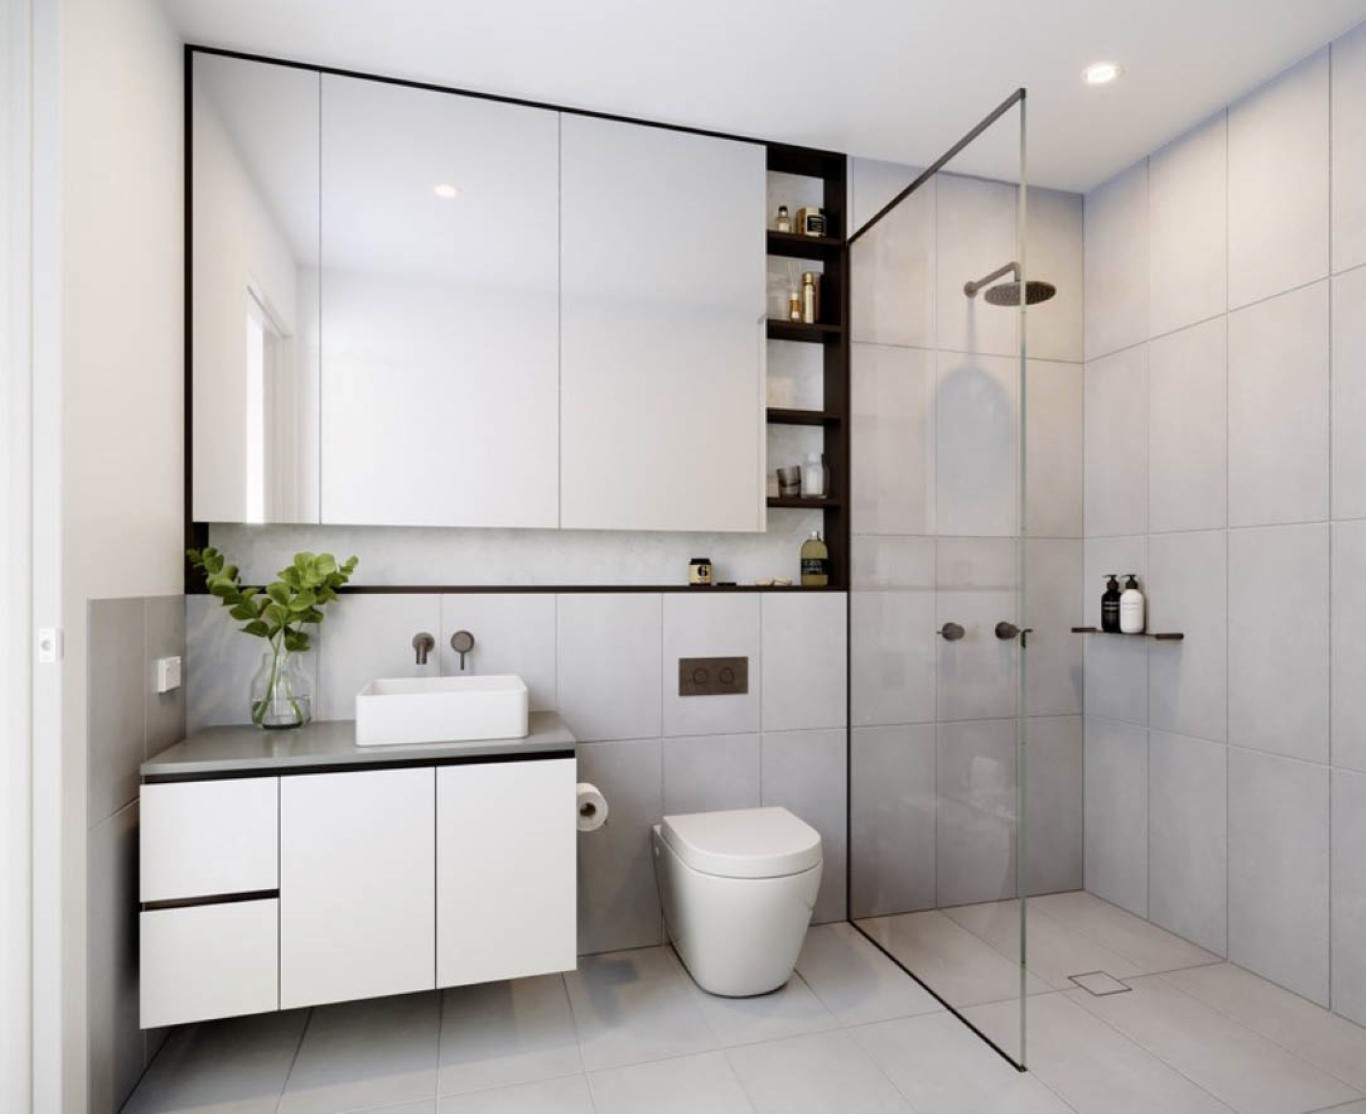 Minimal furniture and clean line elements in a Contemporary bathroom